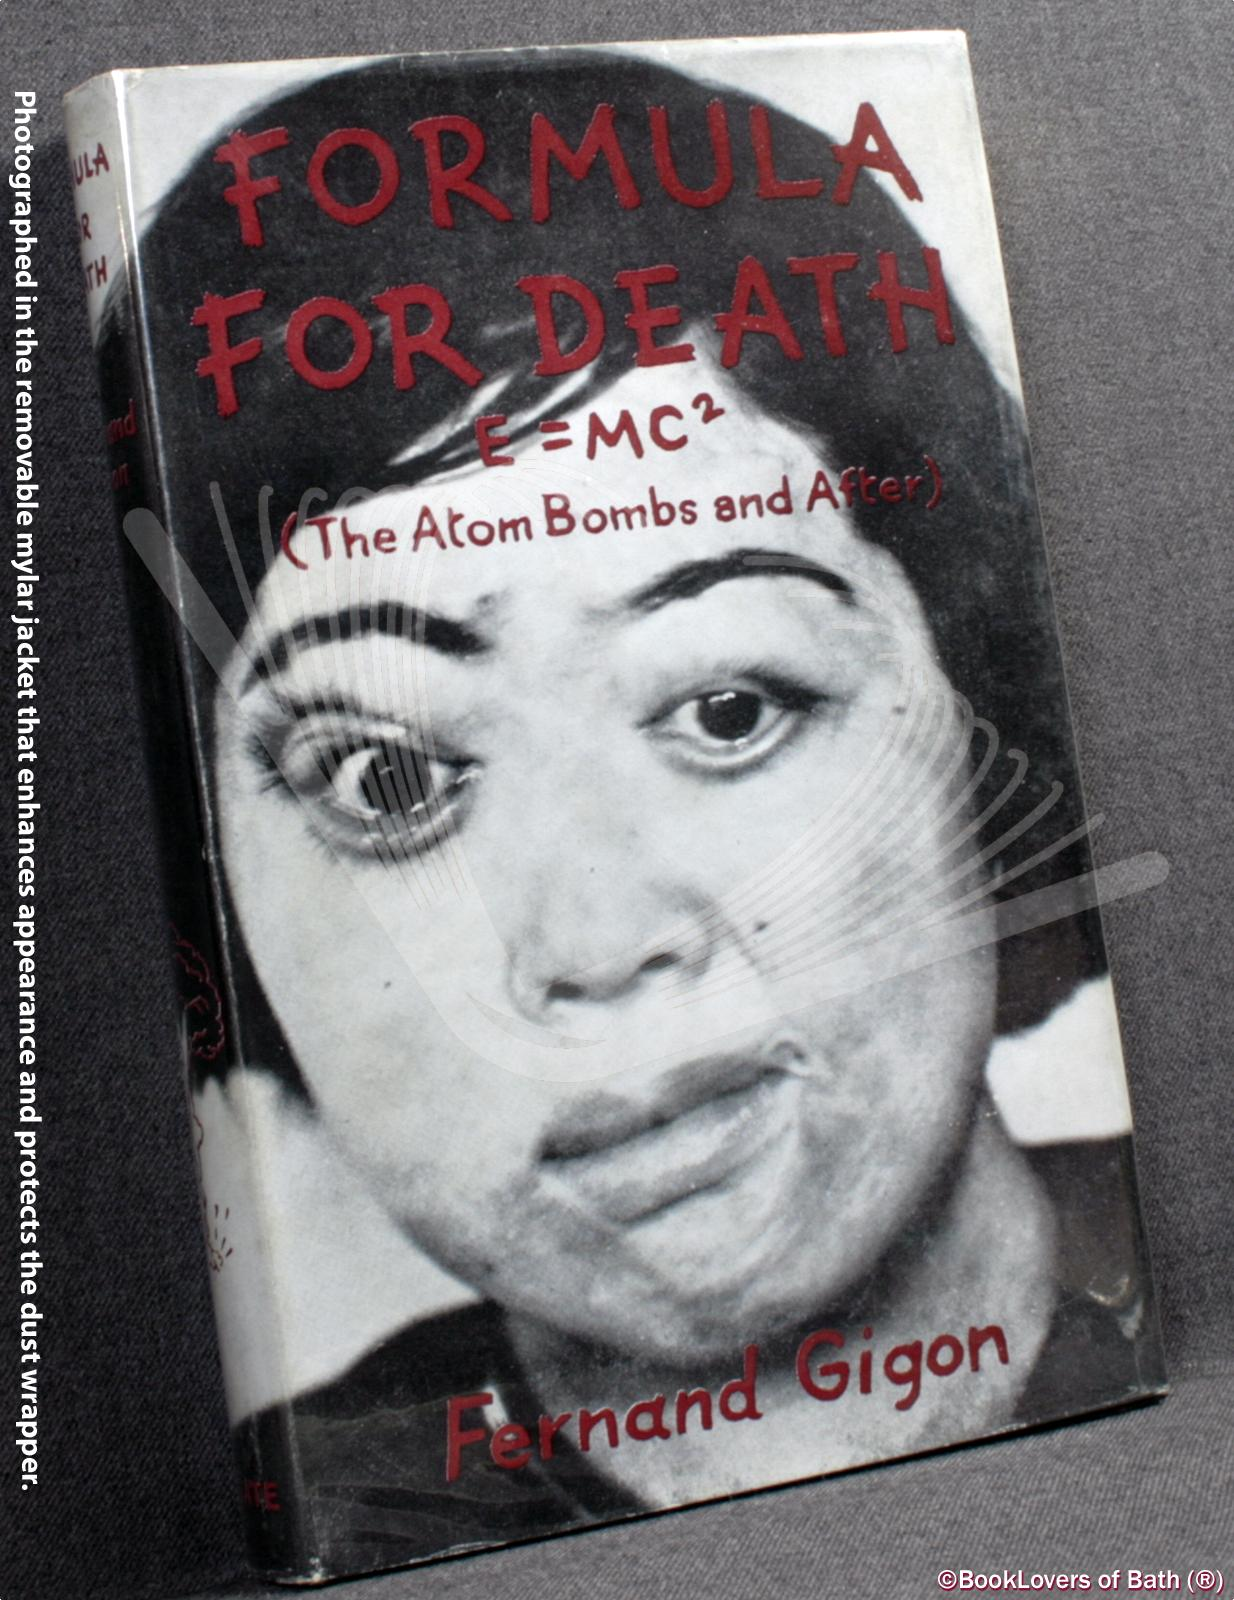 Formula for Death, E=mc2: The Atom Bombs and After - Fernand Gigon